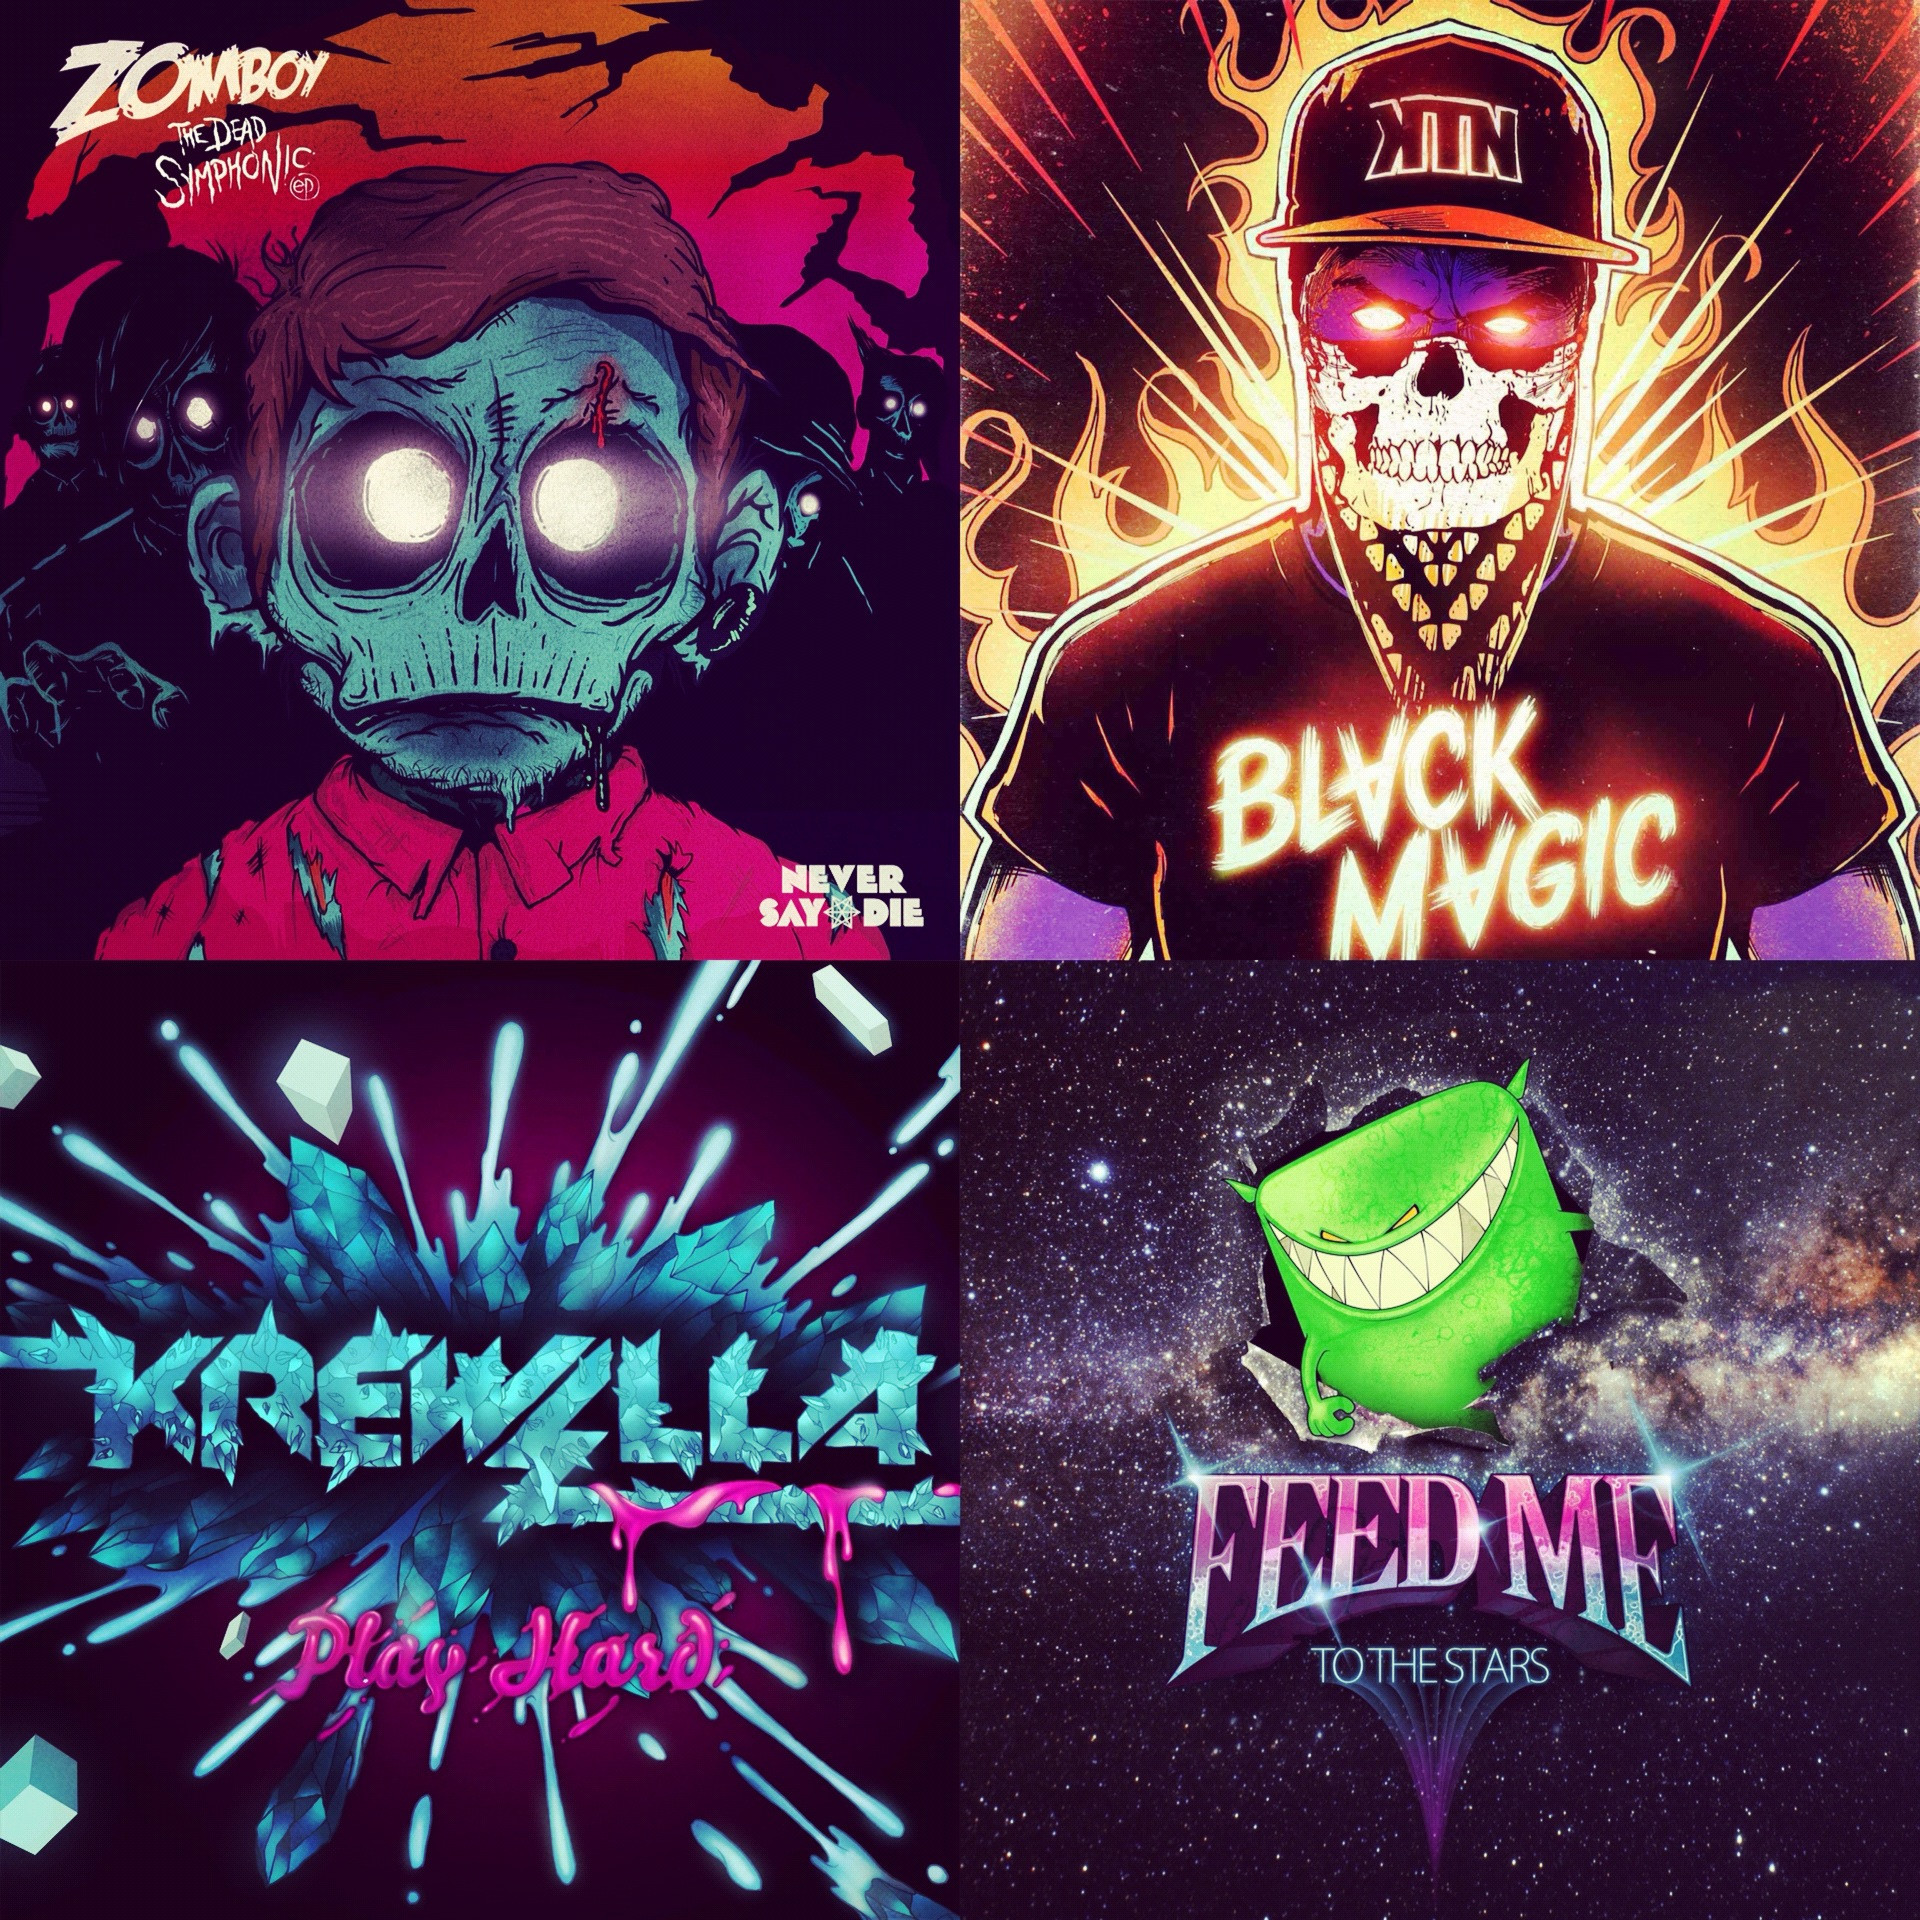 Zomboy wallpaper iphone